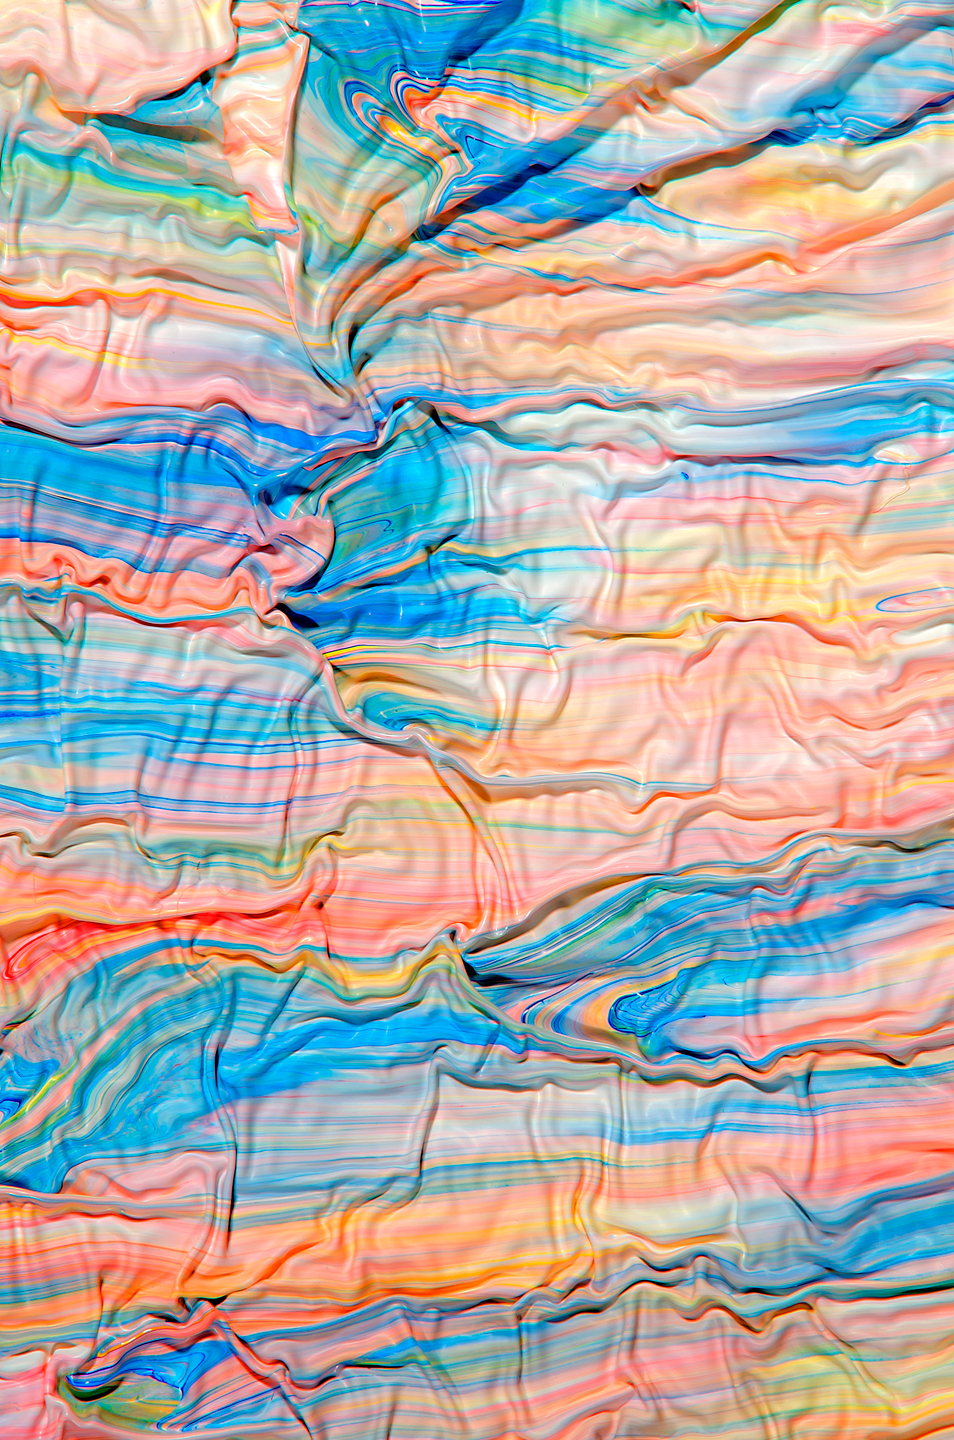 Swirling Photographs of Mixed Paint by Mark Lovejoy